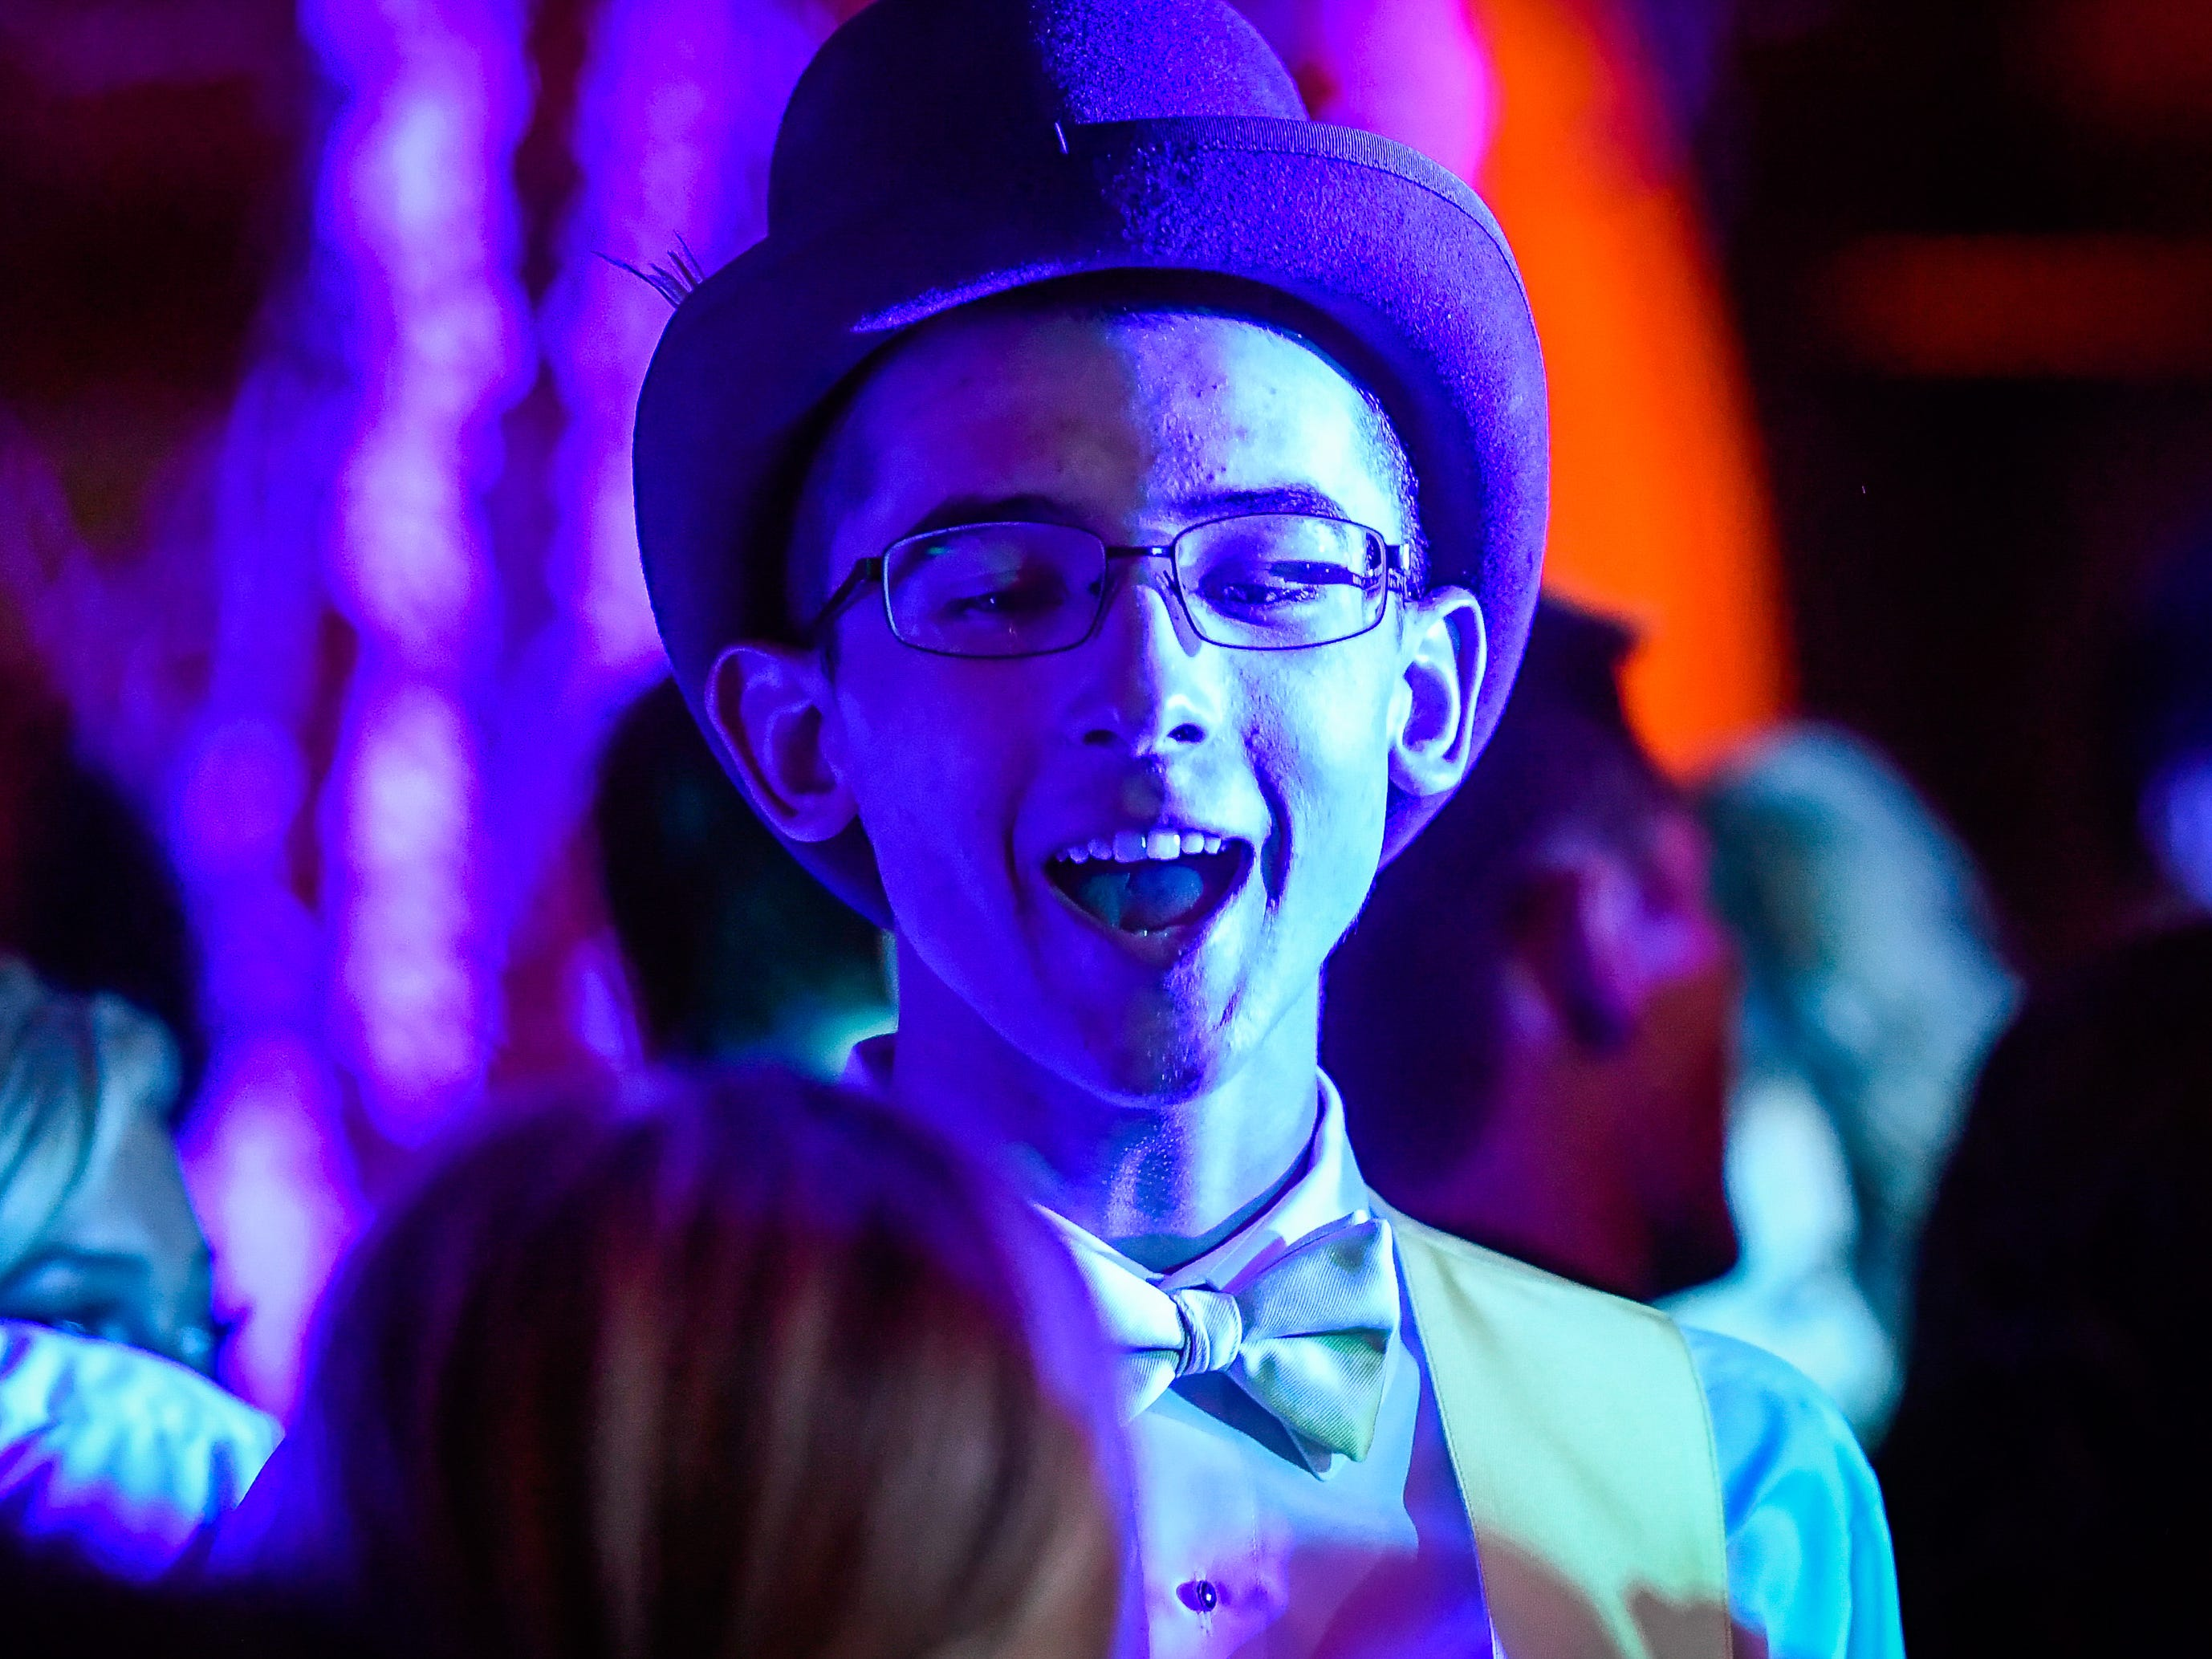 Logan Lasher on the dance floor at the Reitz High School Prom held at the Vanderburgh 4-H Center Saturday, April 13, 2019.